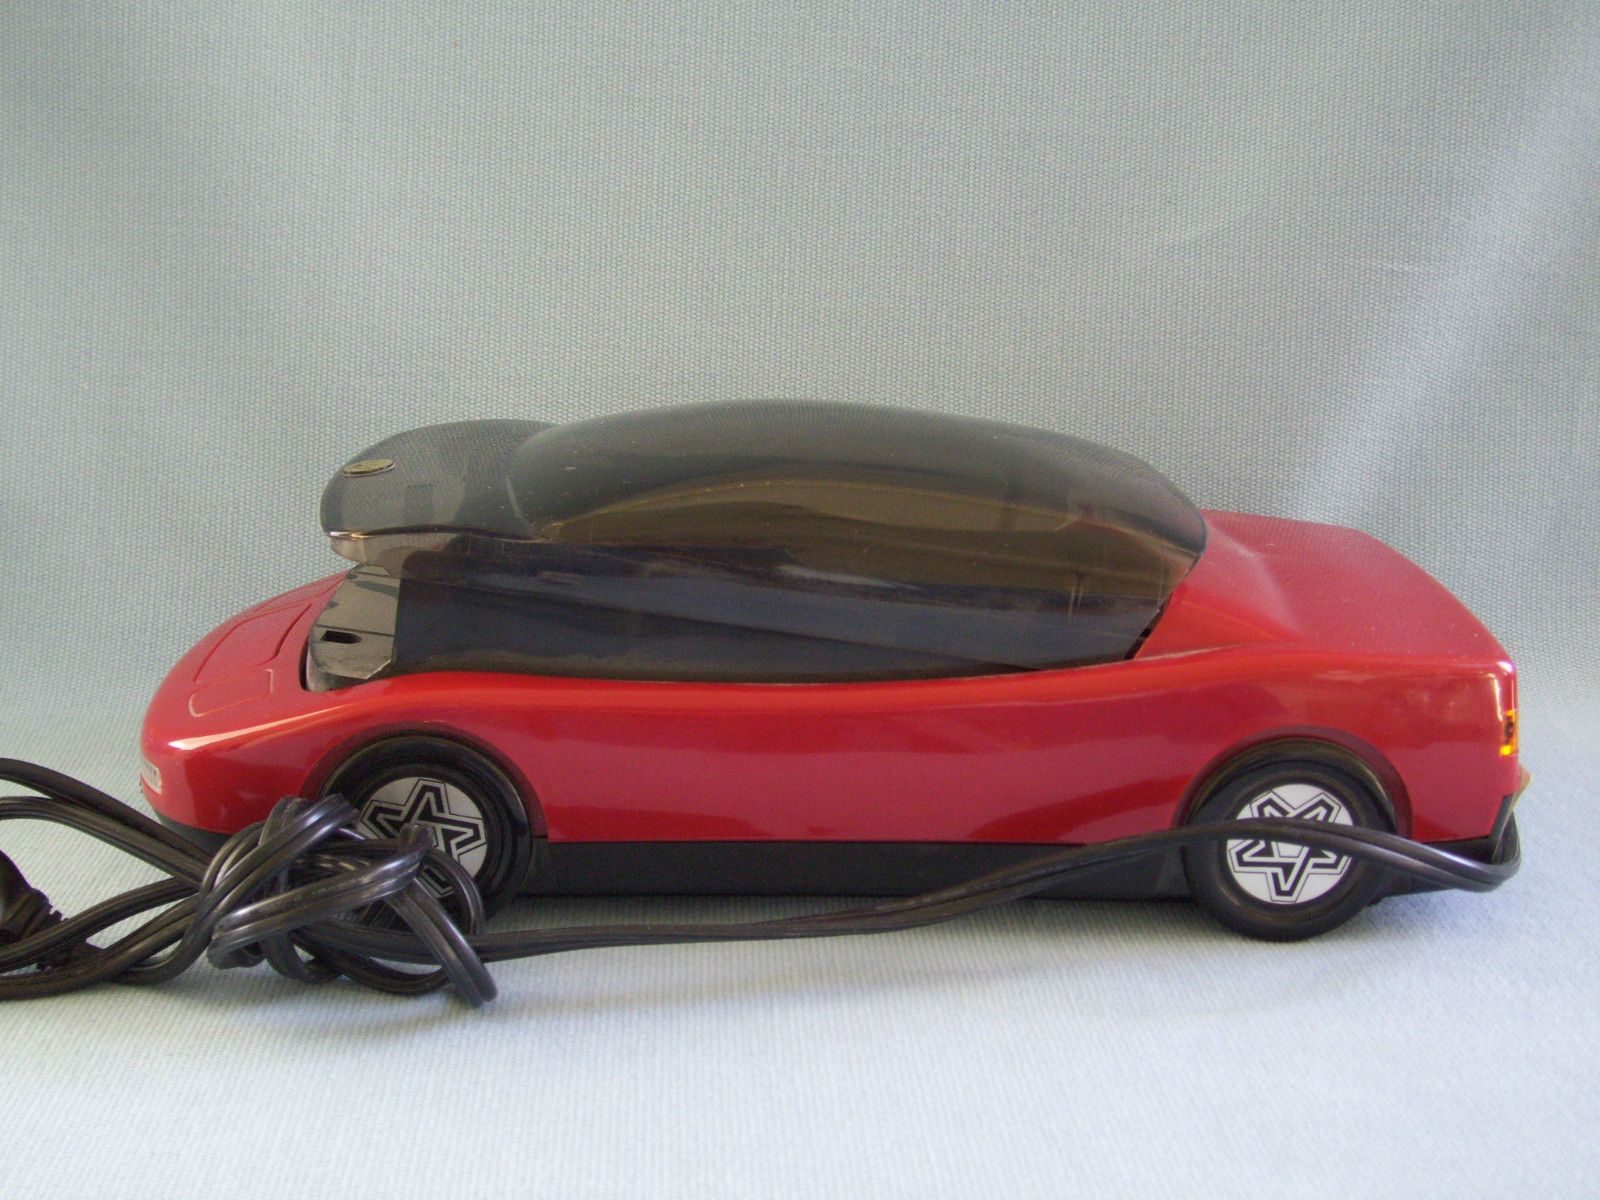 90s car toys  Kinyo Red Car VHS Rewinder  Memories  Pinterest  Childhood and